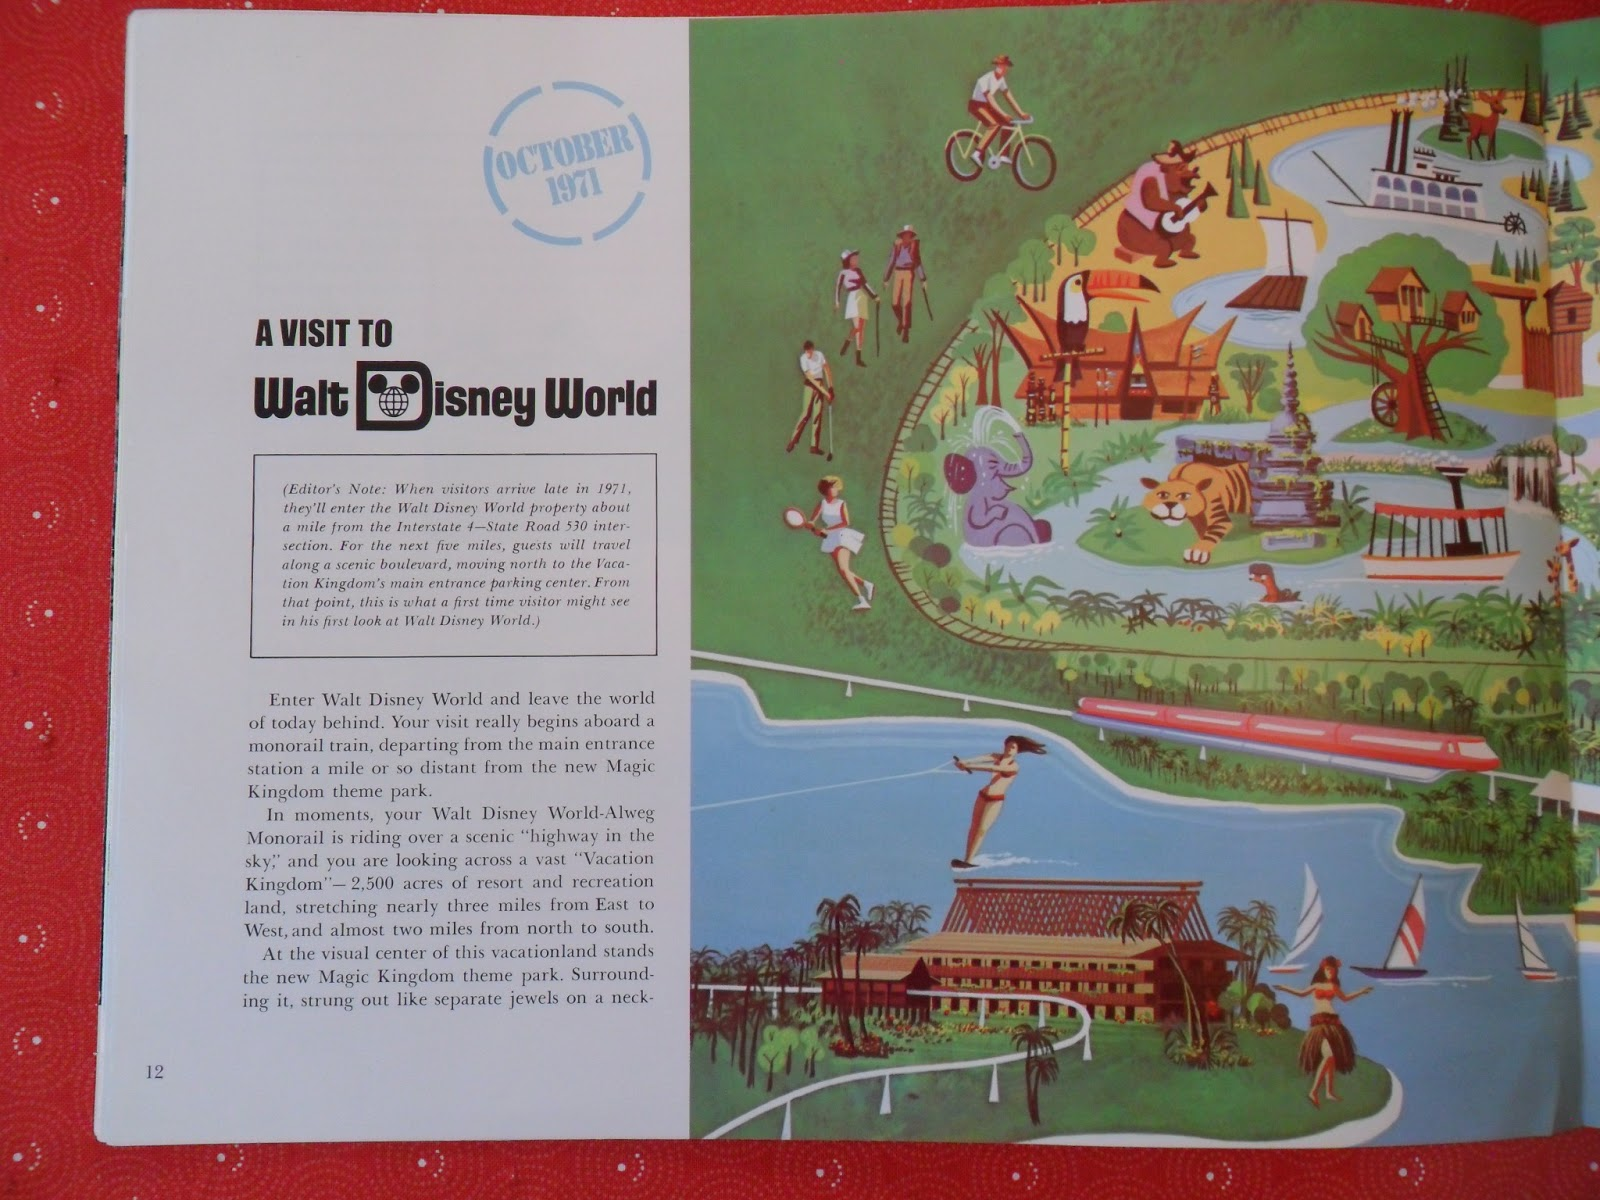 Walt Disney World Preview Edition 1970, Pg. 12